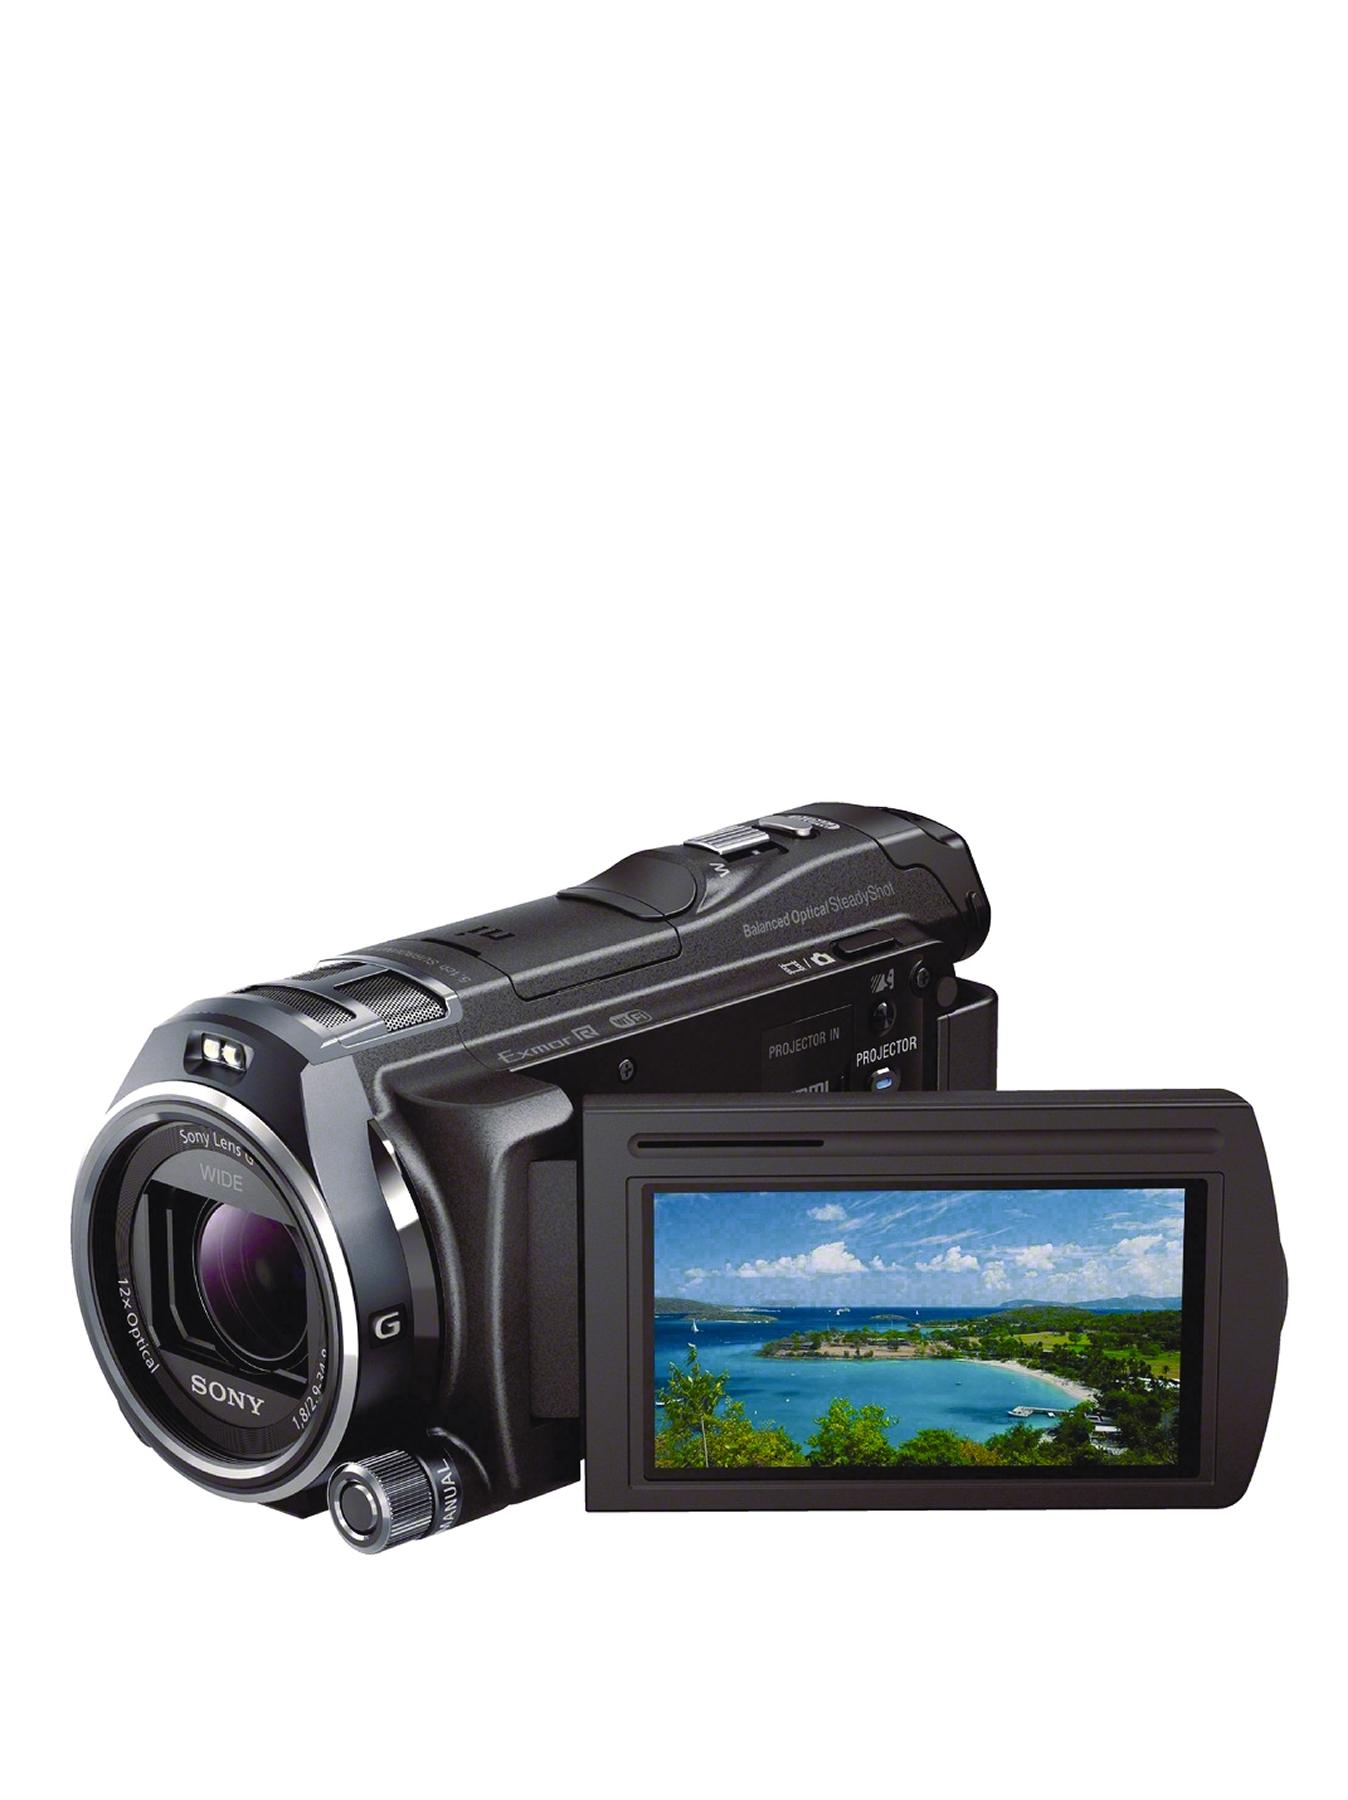 Sony PJ810E Full HD Camcorder with Projector